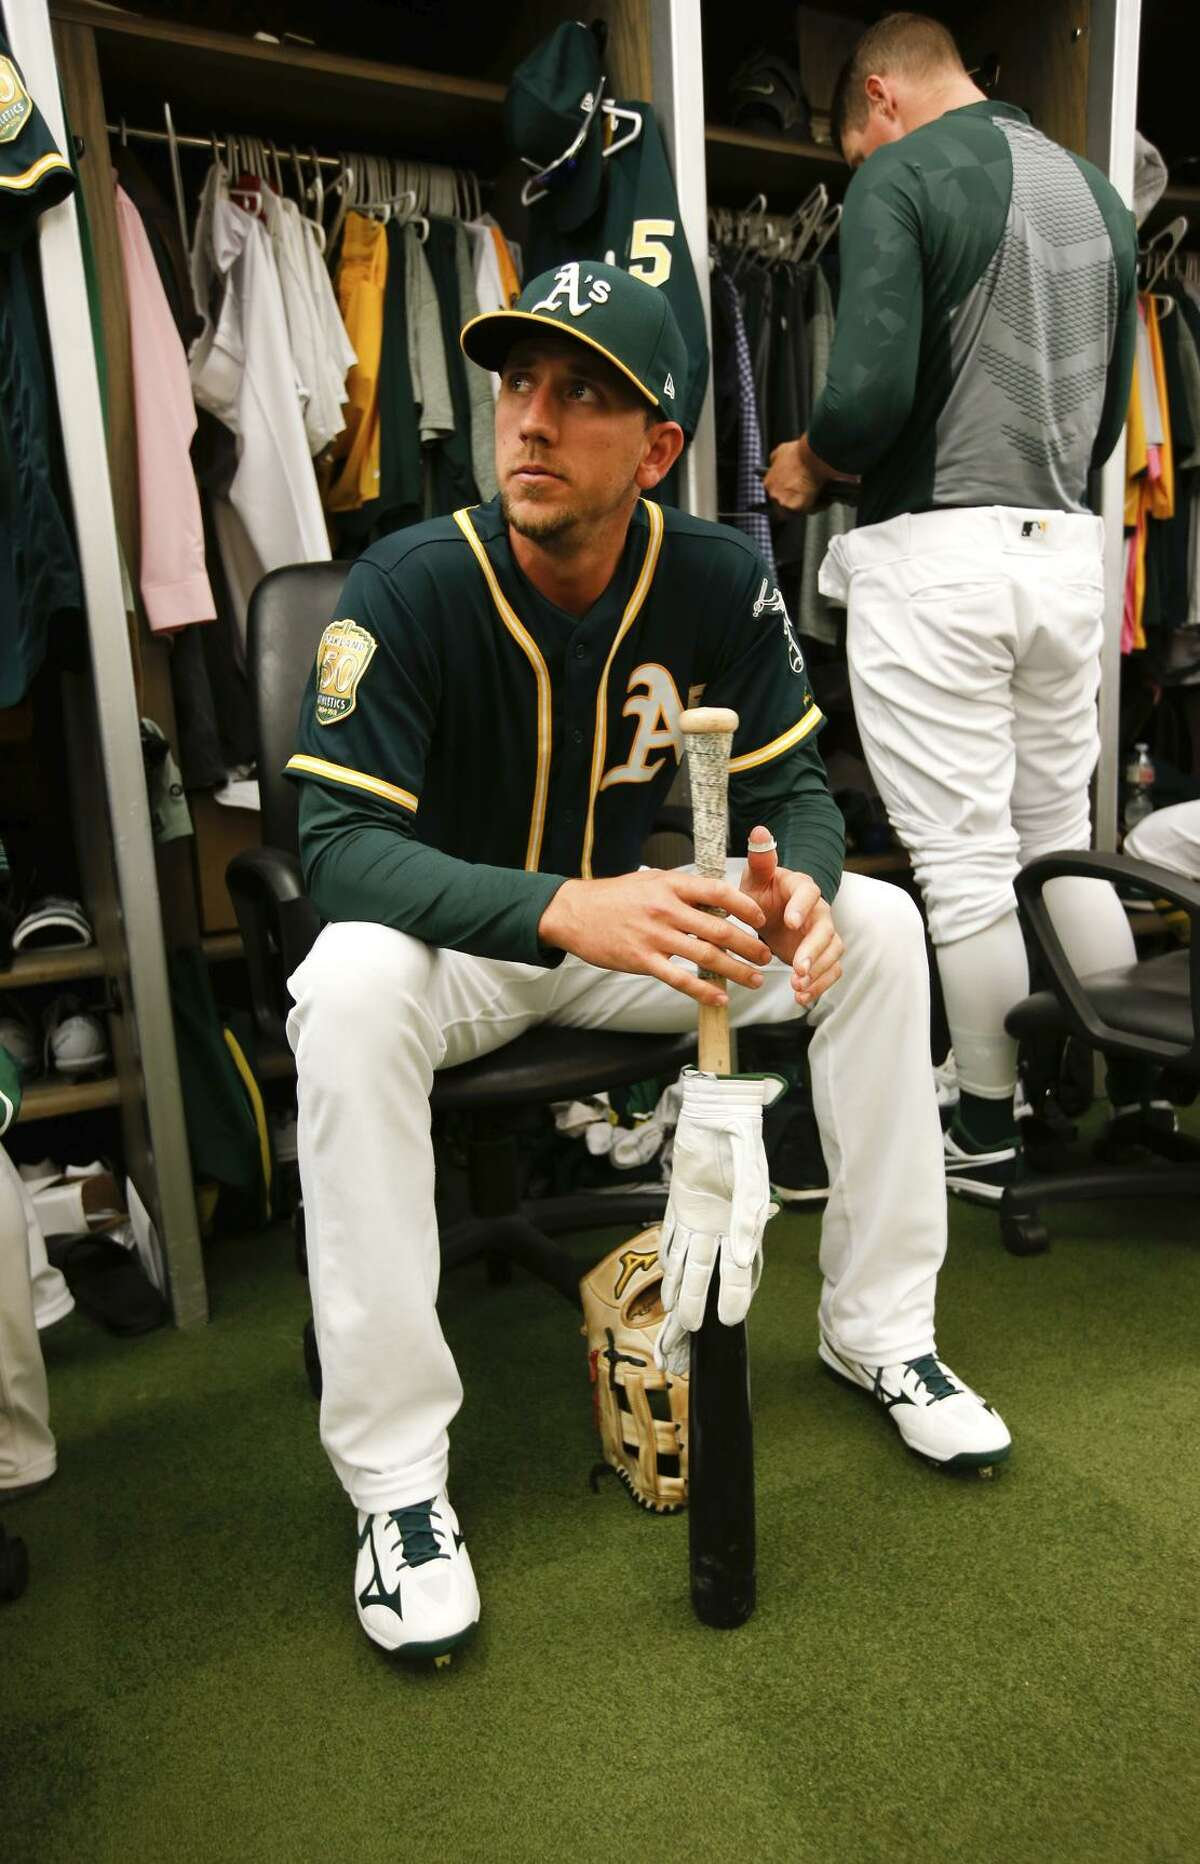 A's outfielder Stephen Piscotty lost his mother Gretchen to ALS on Sunday night at age 55. Stephen and the team have set up a fund for ALS research and those affected in Gretchen's memory at www.youcaring.com /piscotty. The A's will match up to $50,000.